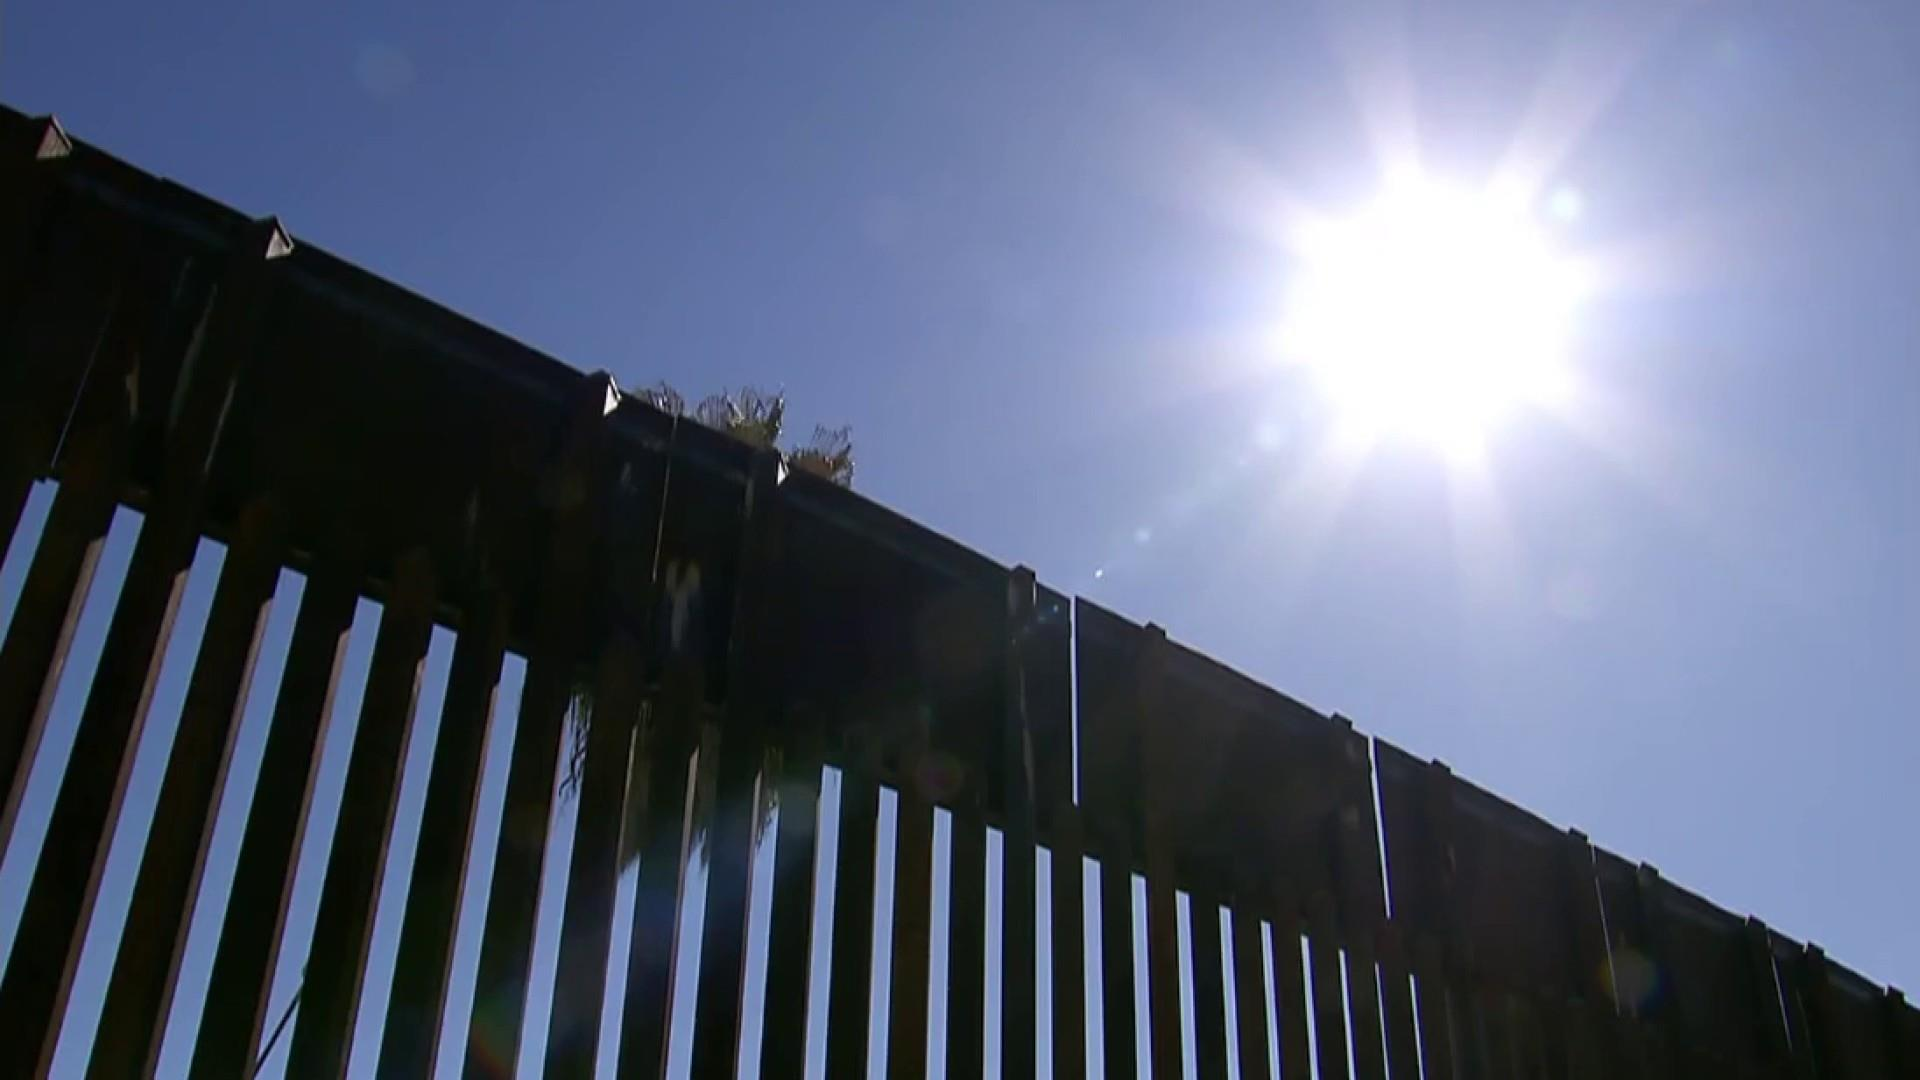 E.J. Dionne: The real hardliners on immigration are uneasy about the wall